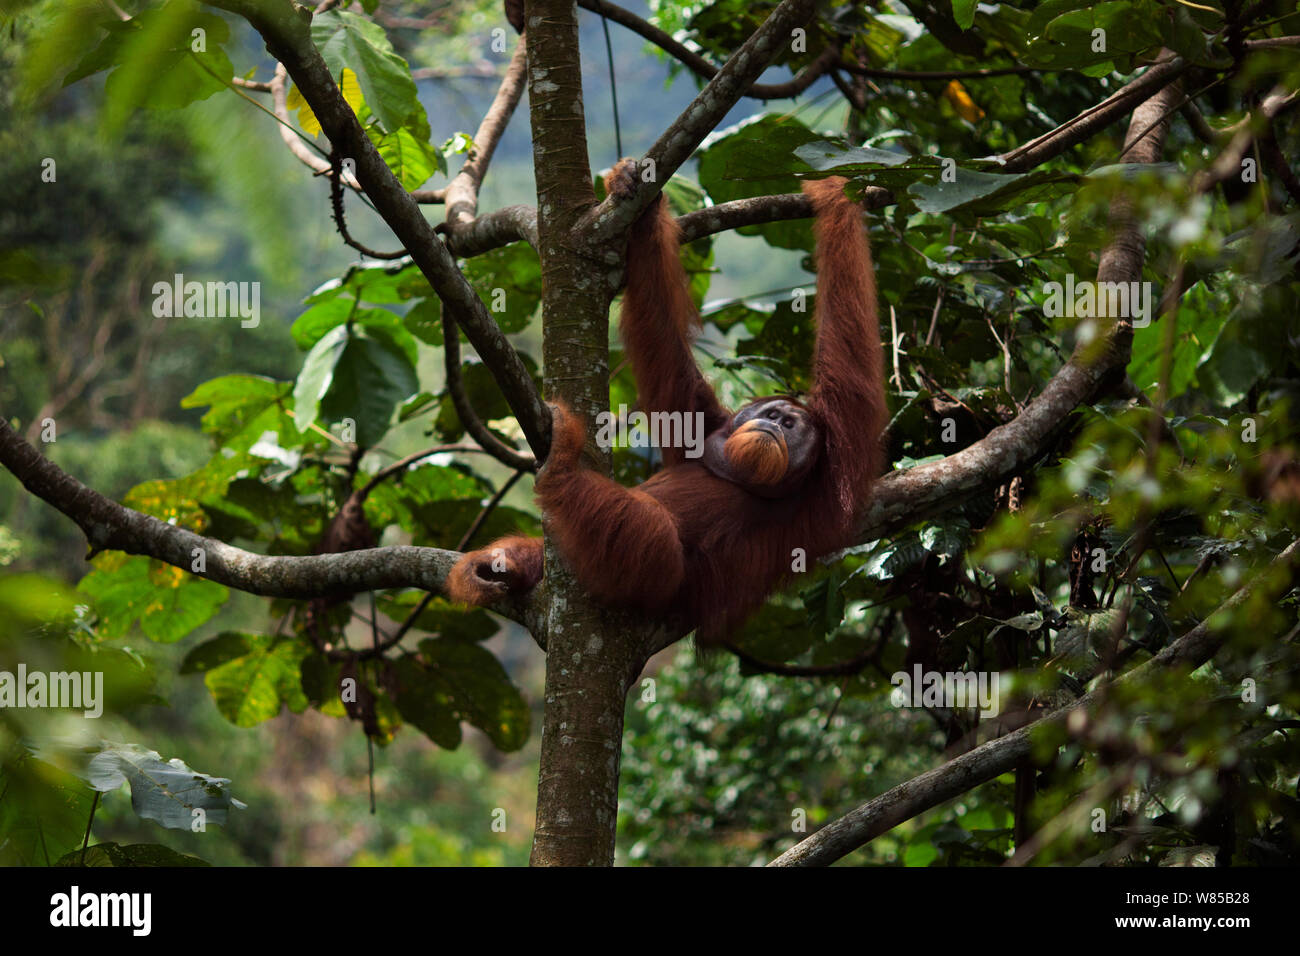 Sumatran orangutan (Pongo abelii) mature male 'Halik' aged 26 years resting in a tree. Gunung Leuser National Park, Sumatra, Indonesia. Rehabilitated and released (or descended from those which were released) between 1973 and 1995. Stock Photo